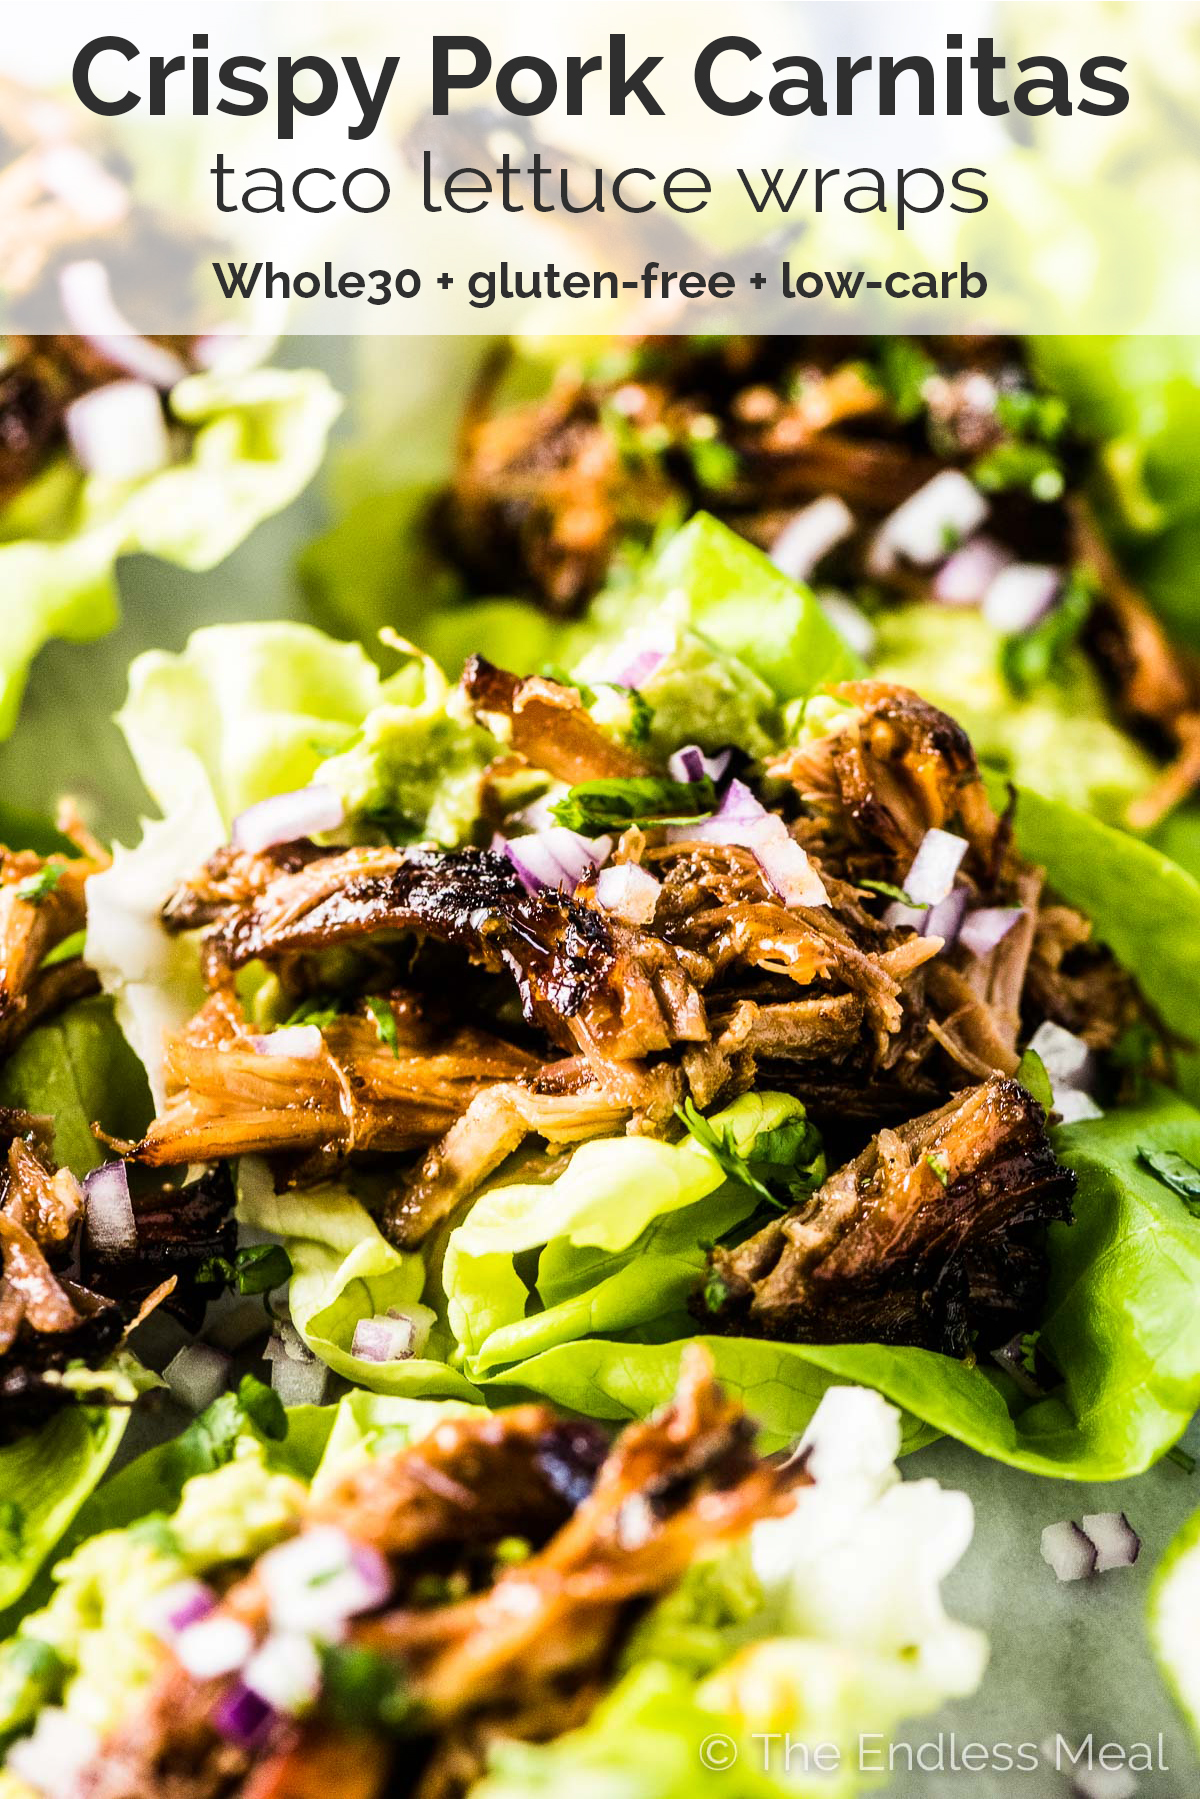 Pinterest image of carnitas taco lettuce wraps with the title on top of the picture.